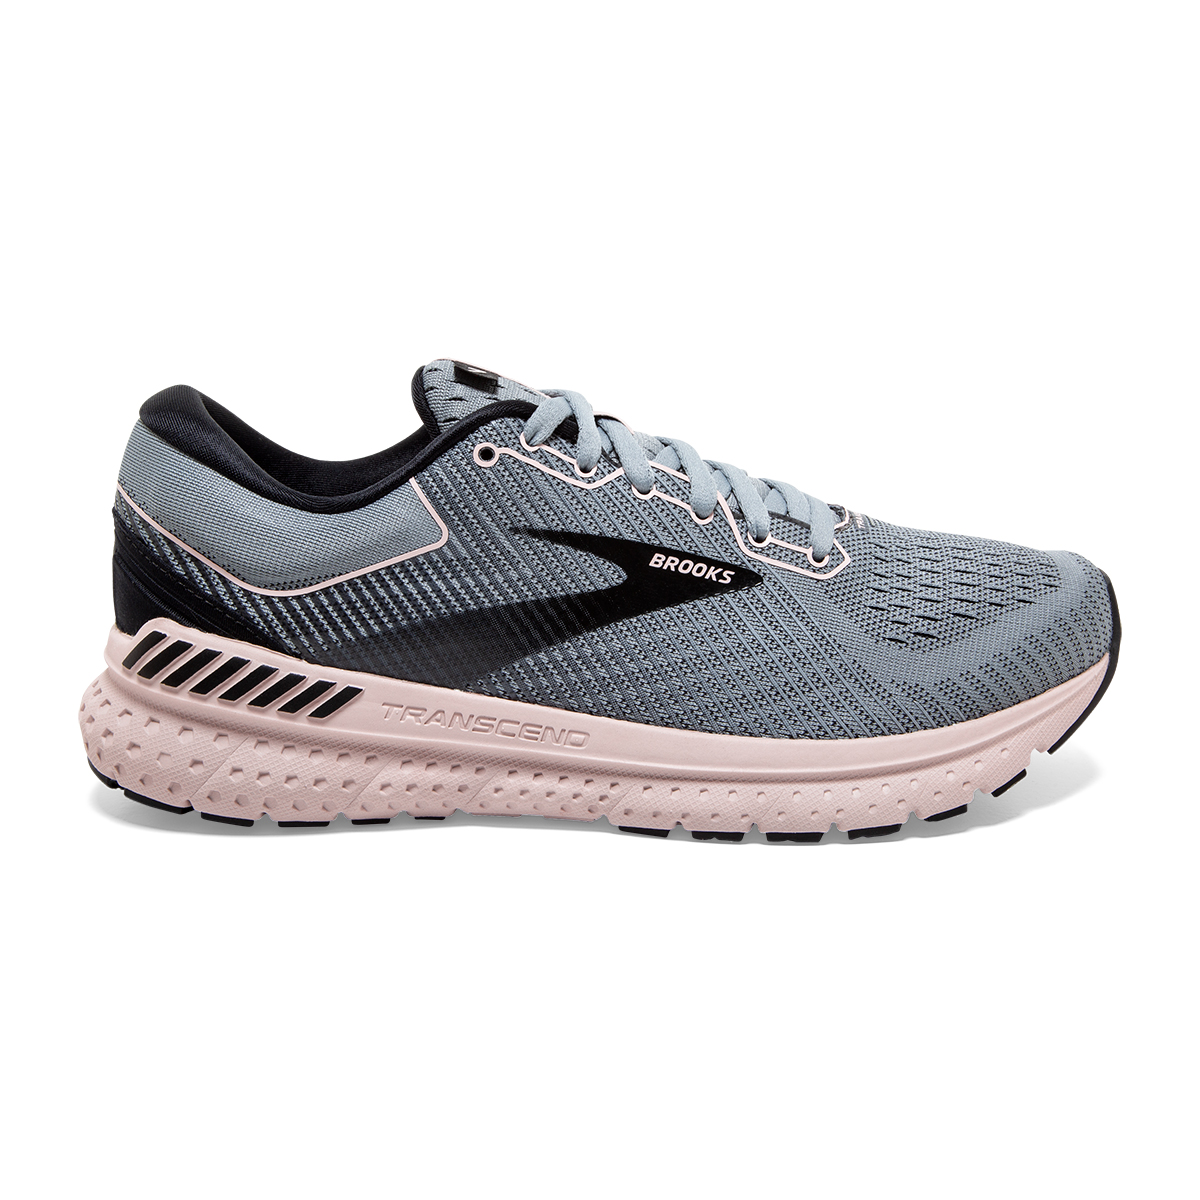 Women's Brooks Transcend 7 Running Shoe - Color: Grey/Black/Hushed Pink - Size: 6 - Width: Regular, Grey/Black/Hushed Pink, large, image 1